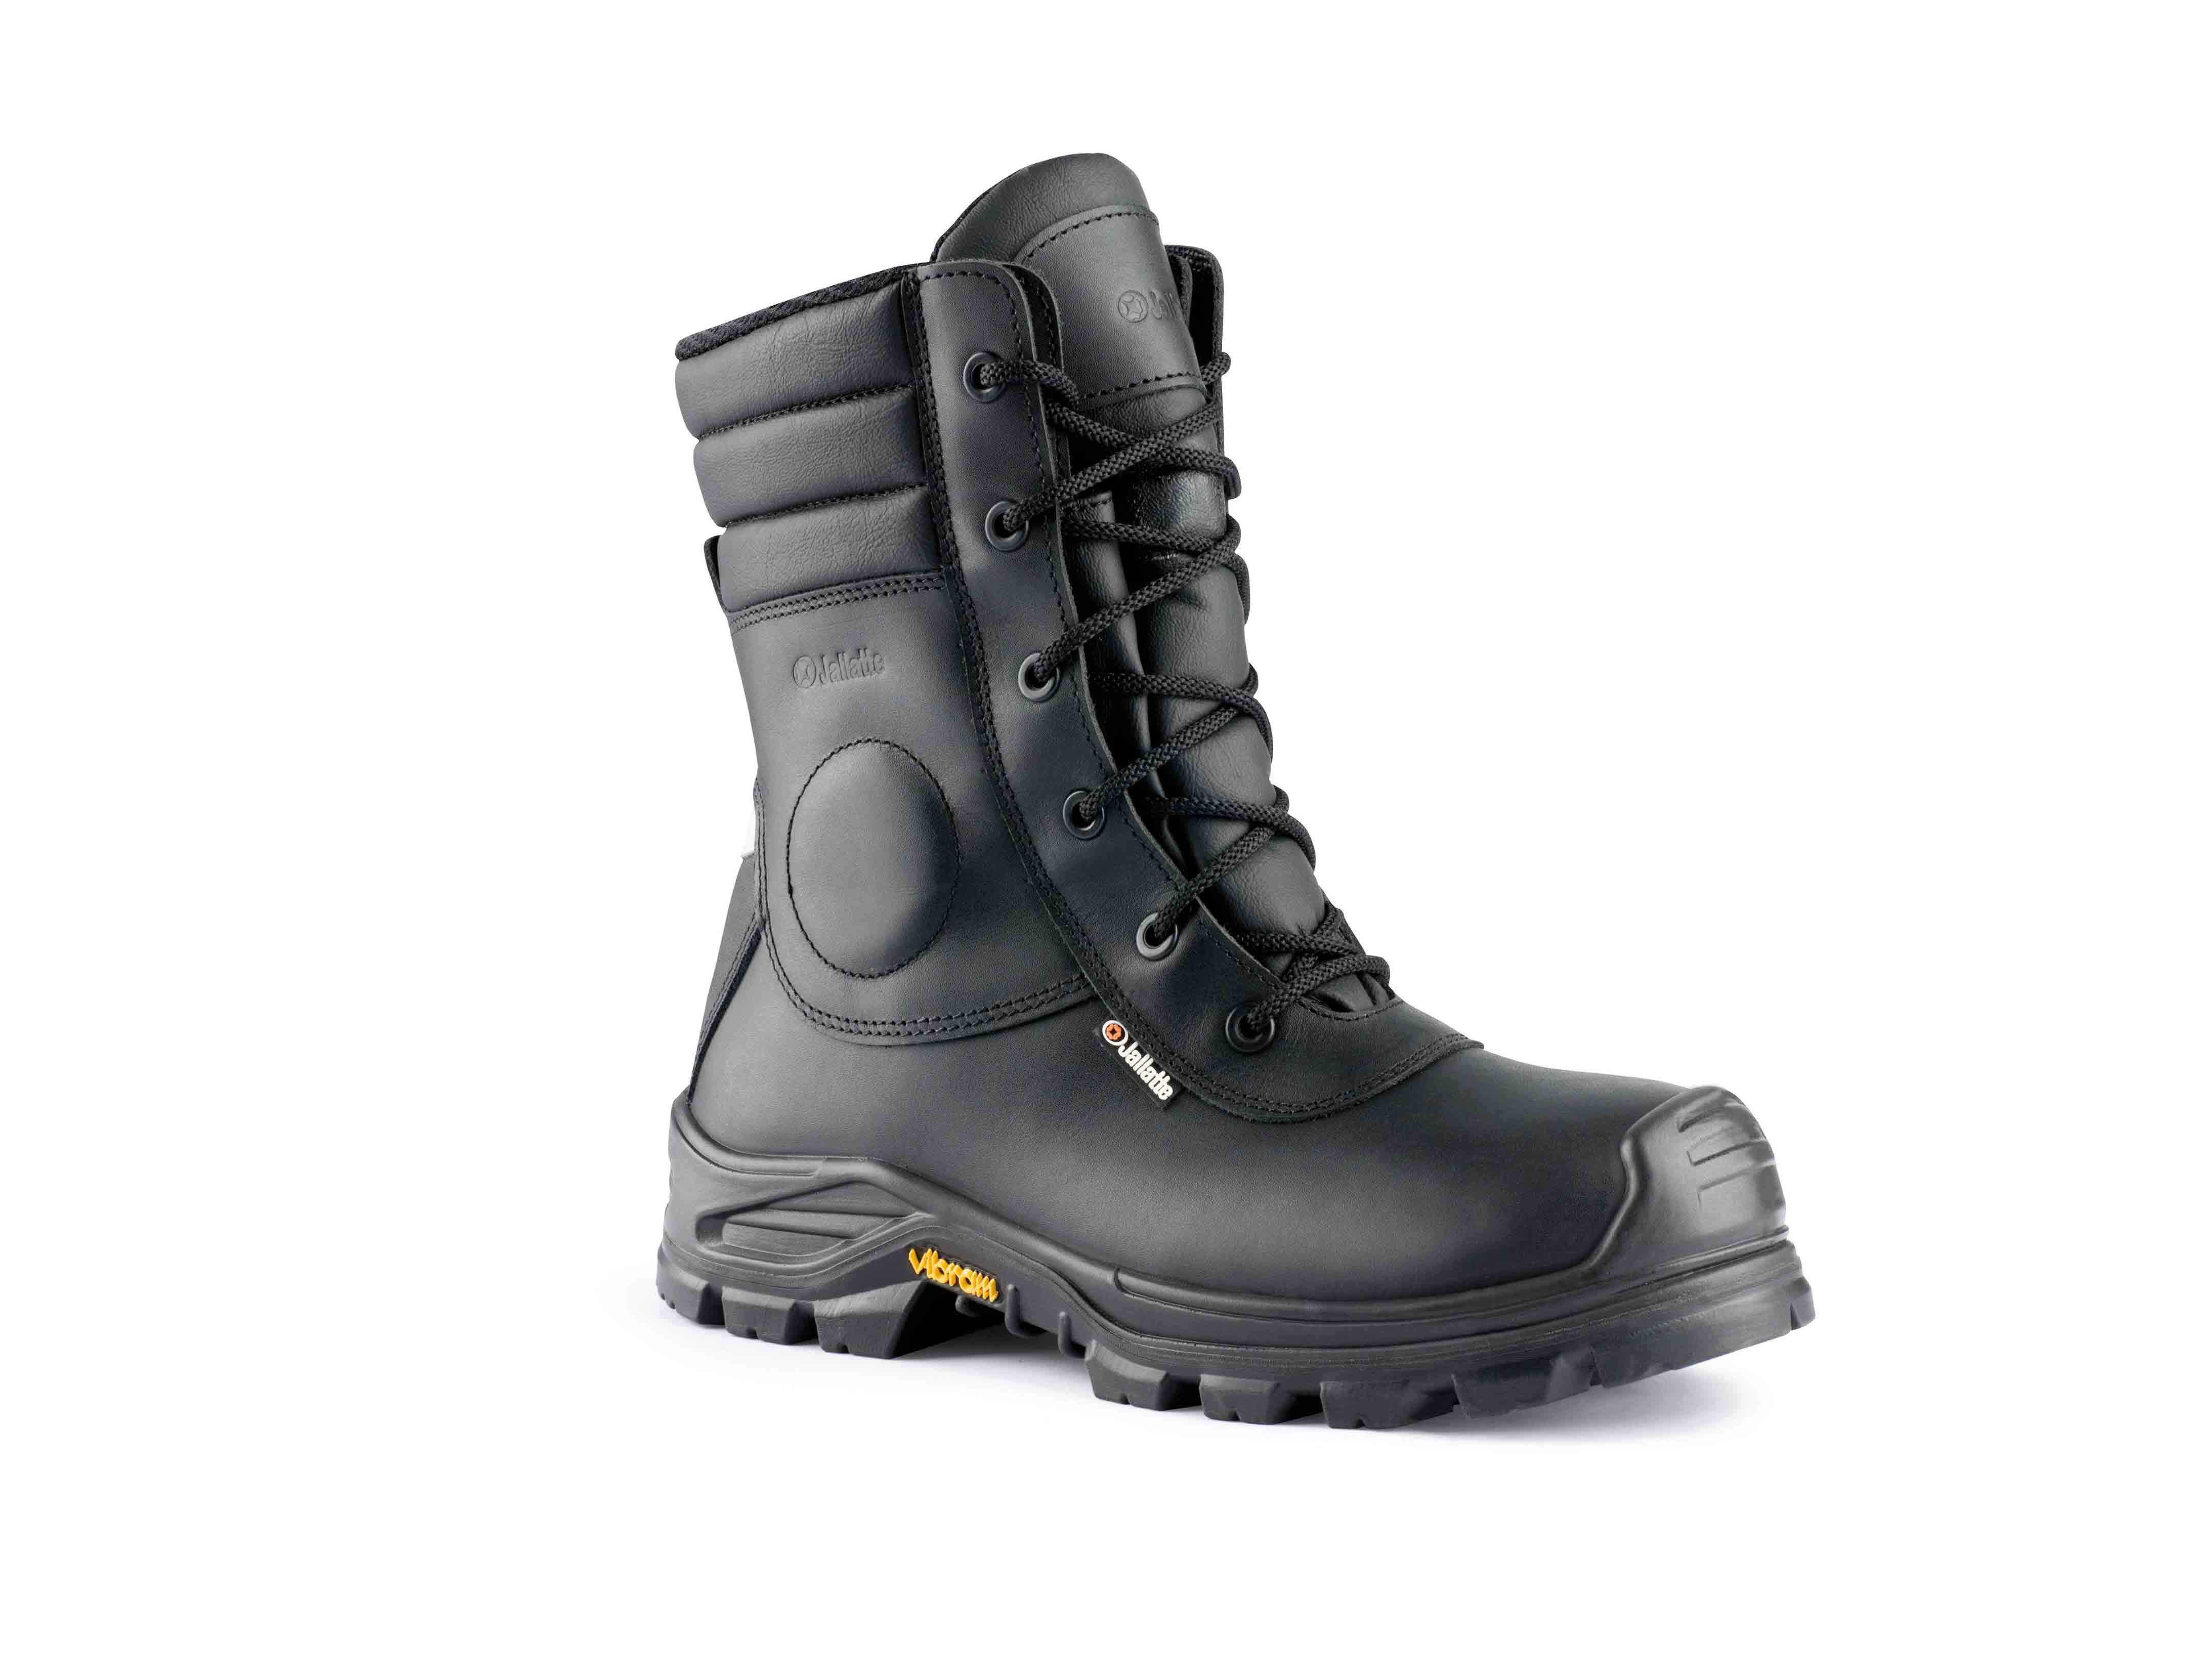 075f0f97c30cc5 Jallatte Jalarcher SAS Special High-Cut Safety Boot With Side Zip, S3 CI  HRO SRC